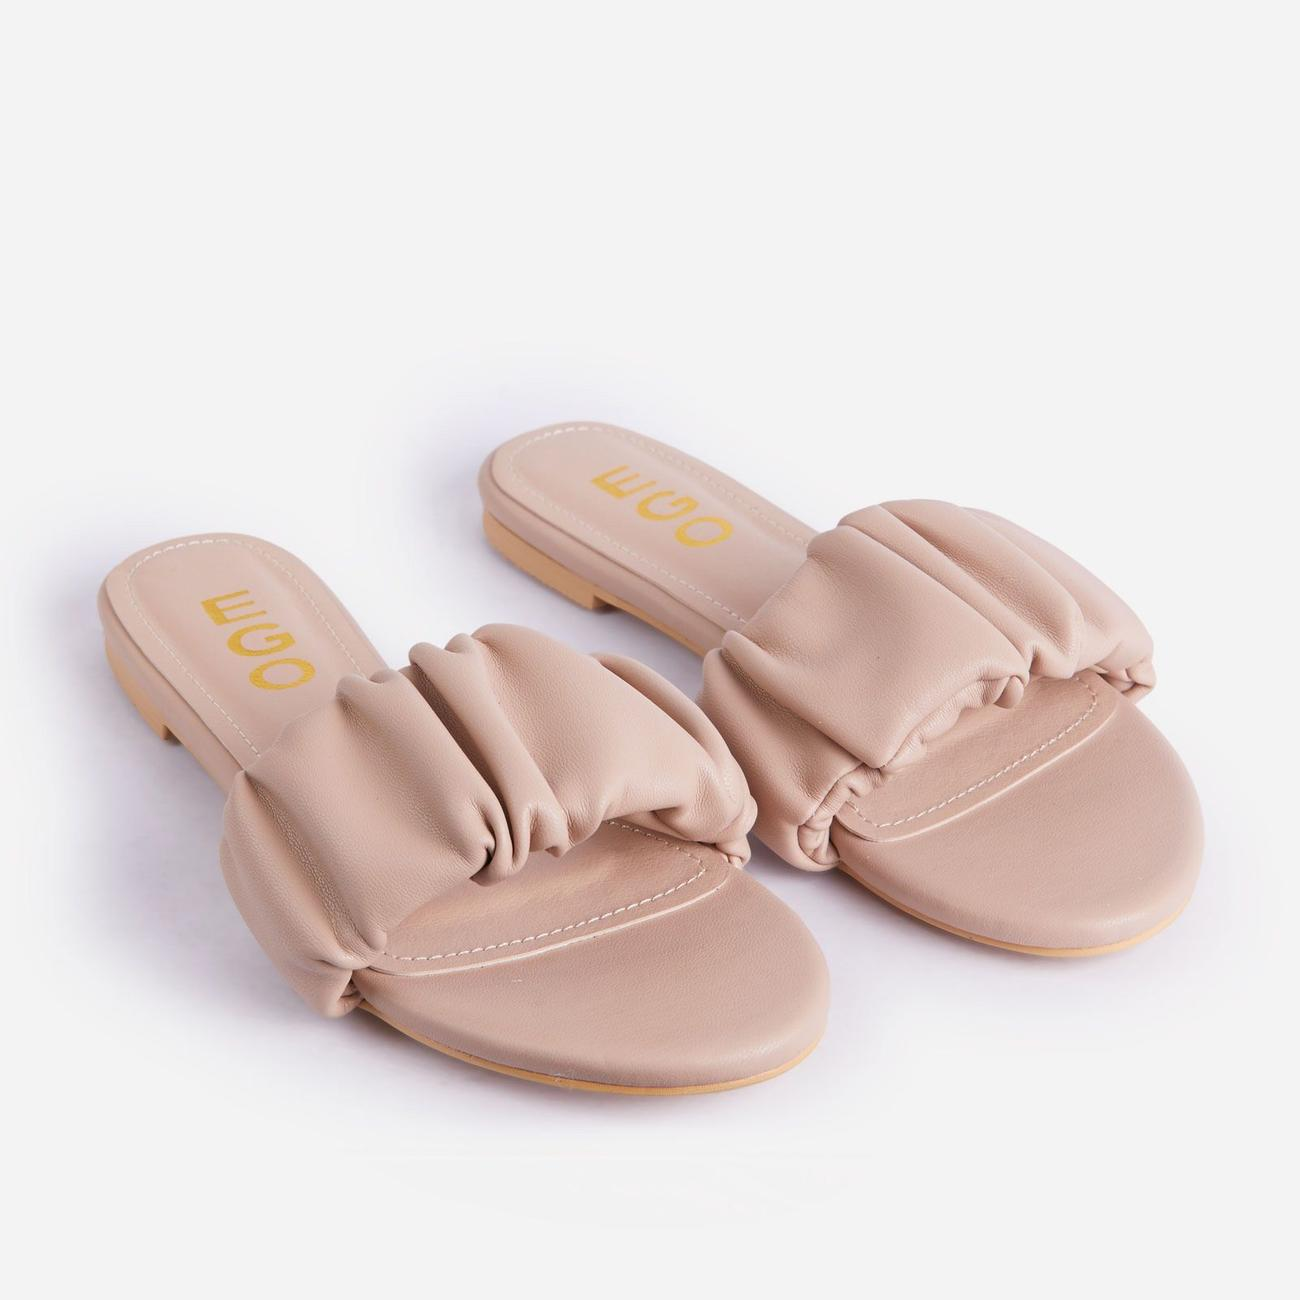 Tender Ruched Flat Slider Sandal In Nude Faux Leather Image 2